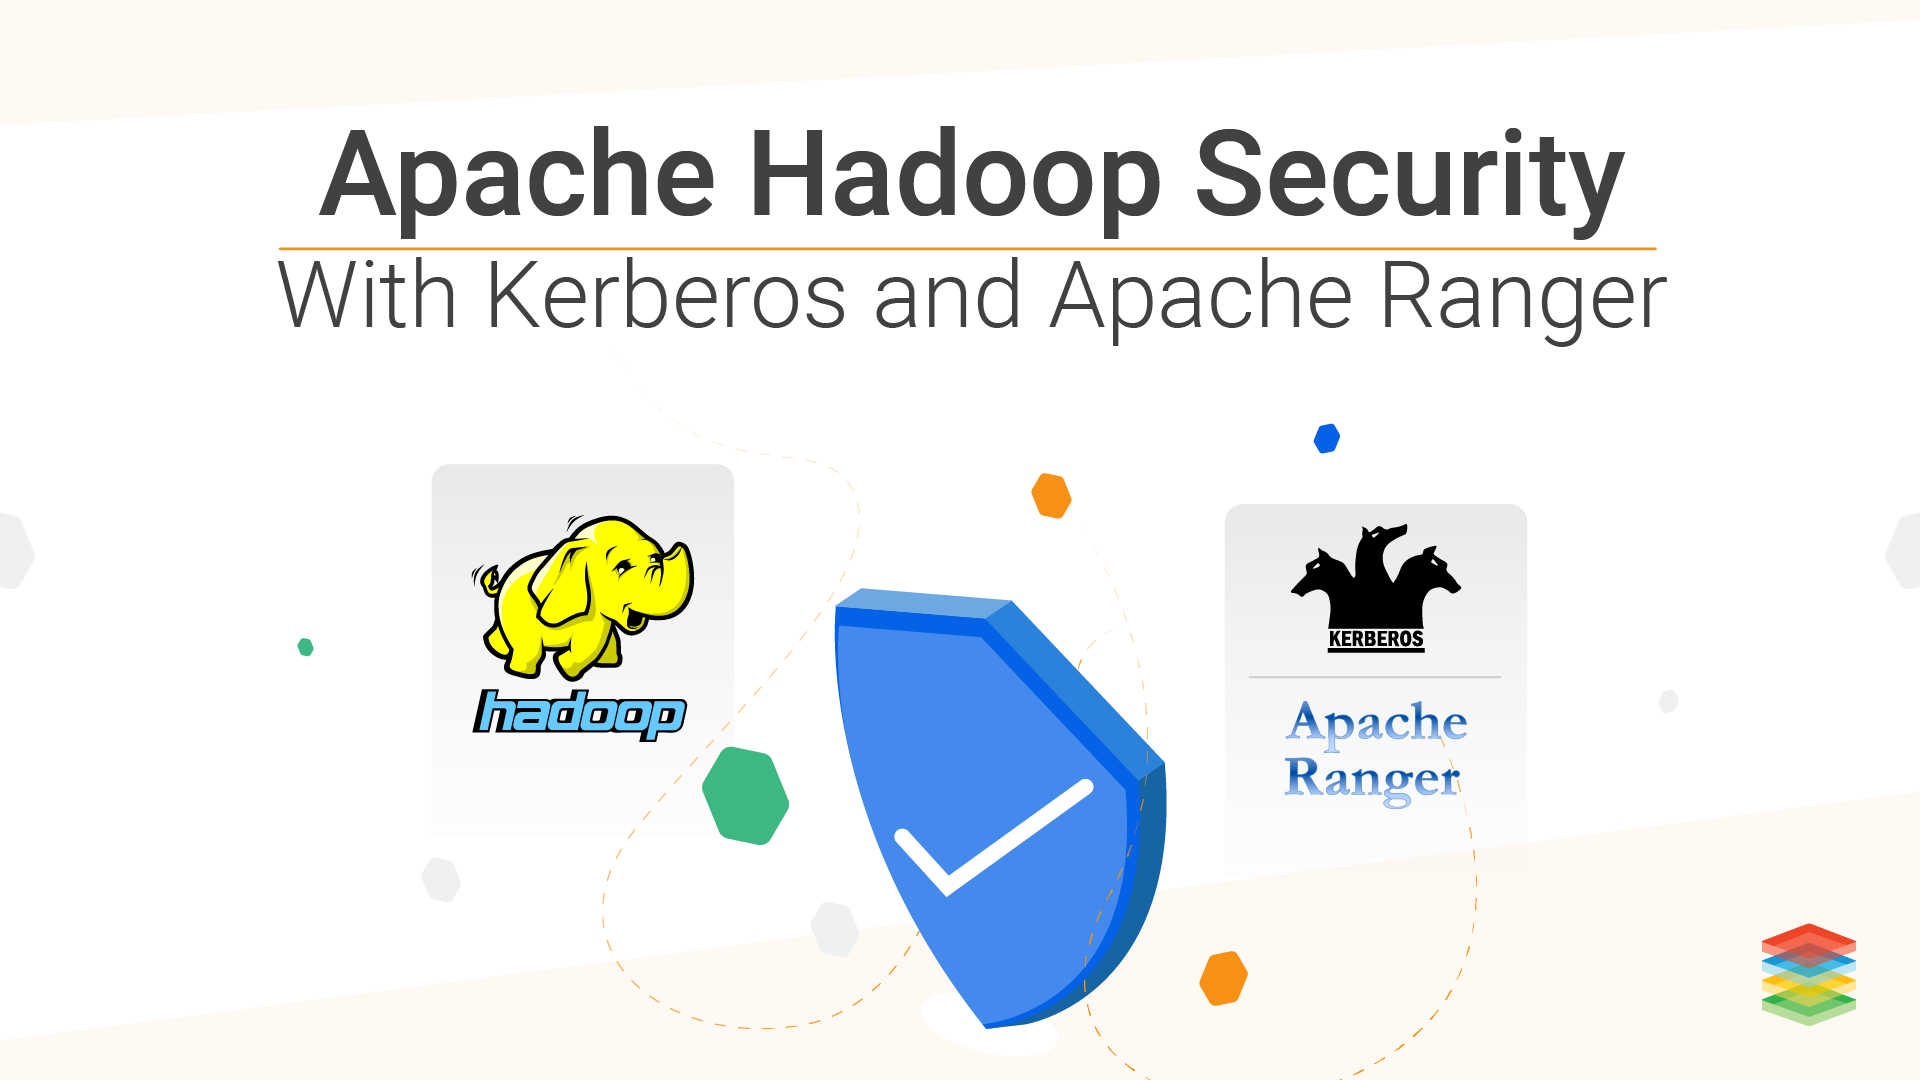 Apache Hadoop on Kubernetes With Kerberos and Apache Ranger